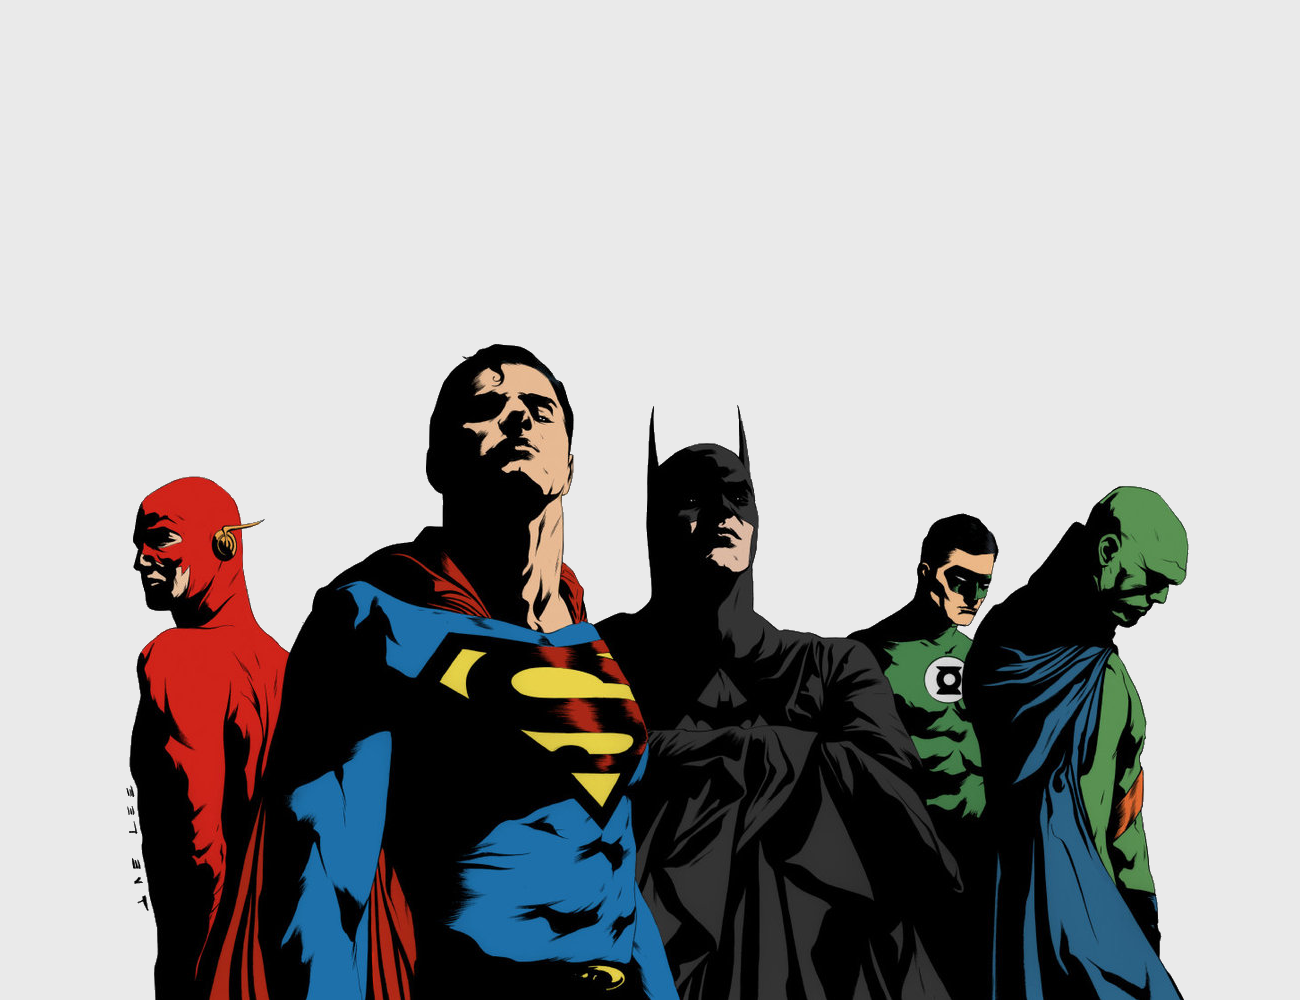 Superhero Computer Wallpapers, Desktop Backgrounds  1300x1000  ID